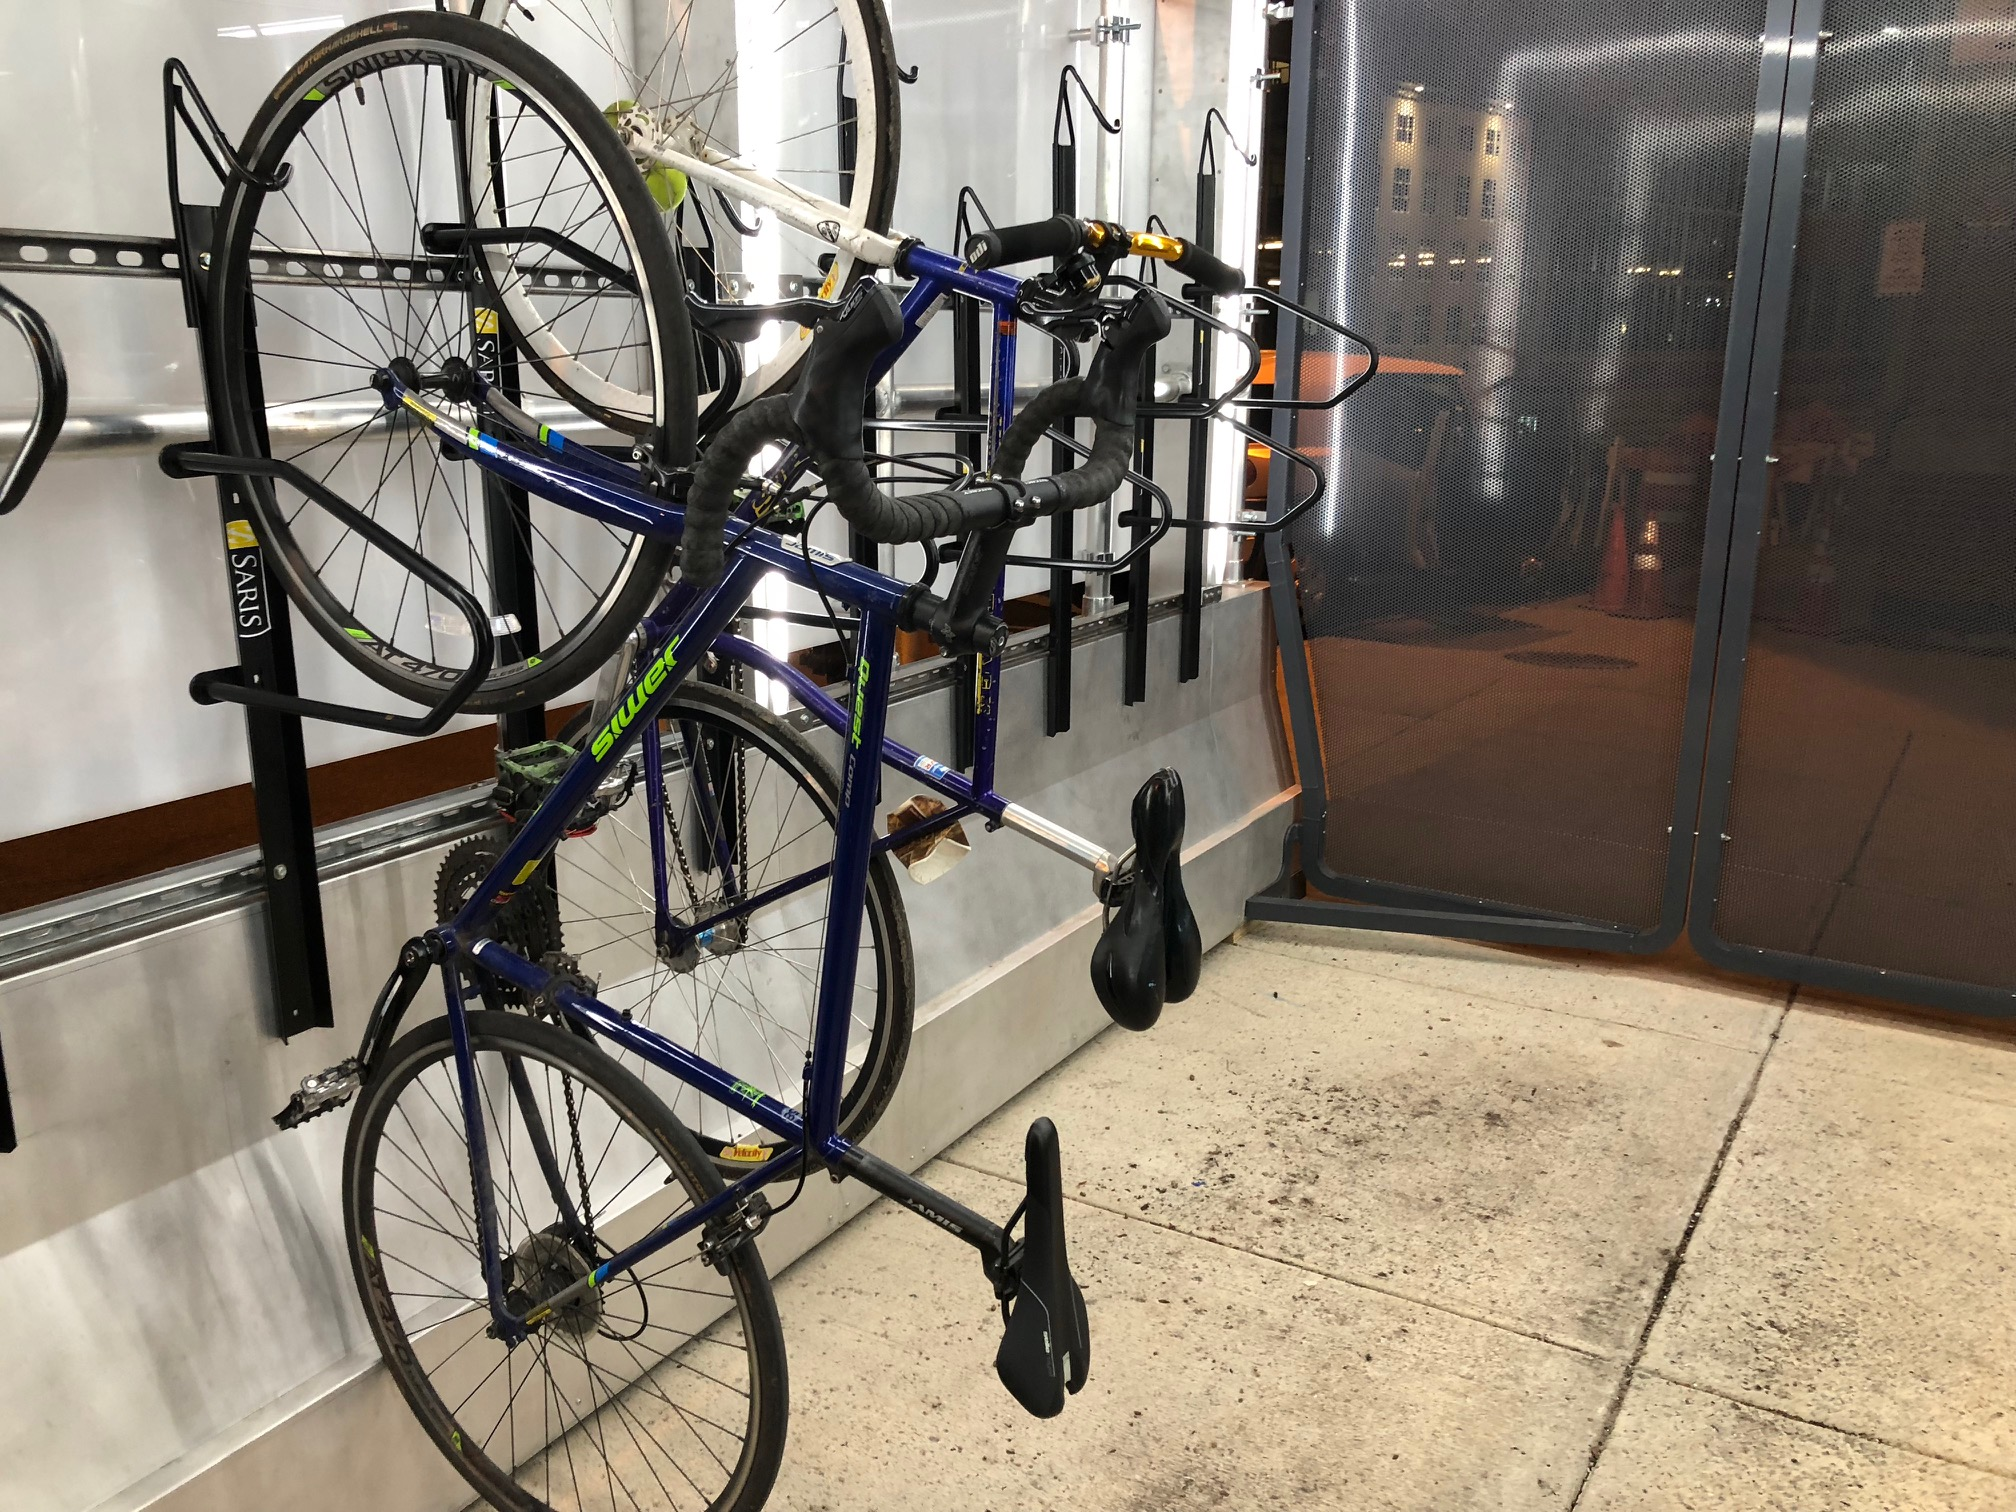 Parking Garage Bike Rack Meet The Oonee Pod Secure Bike Parking Designed To Be Flexible